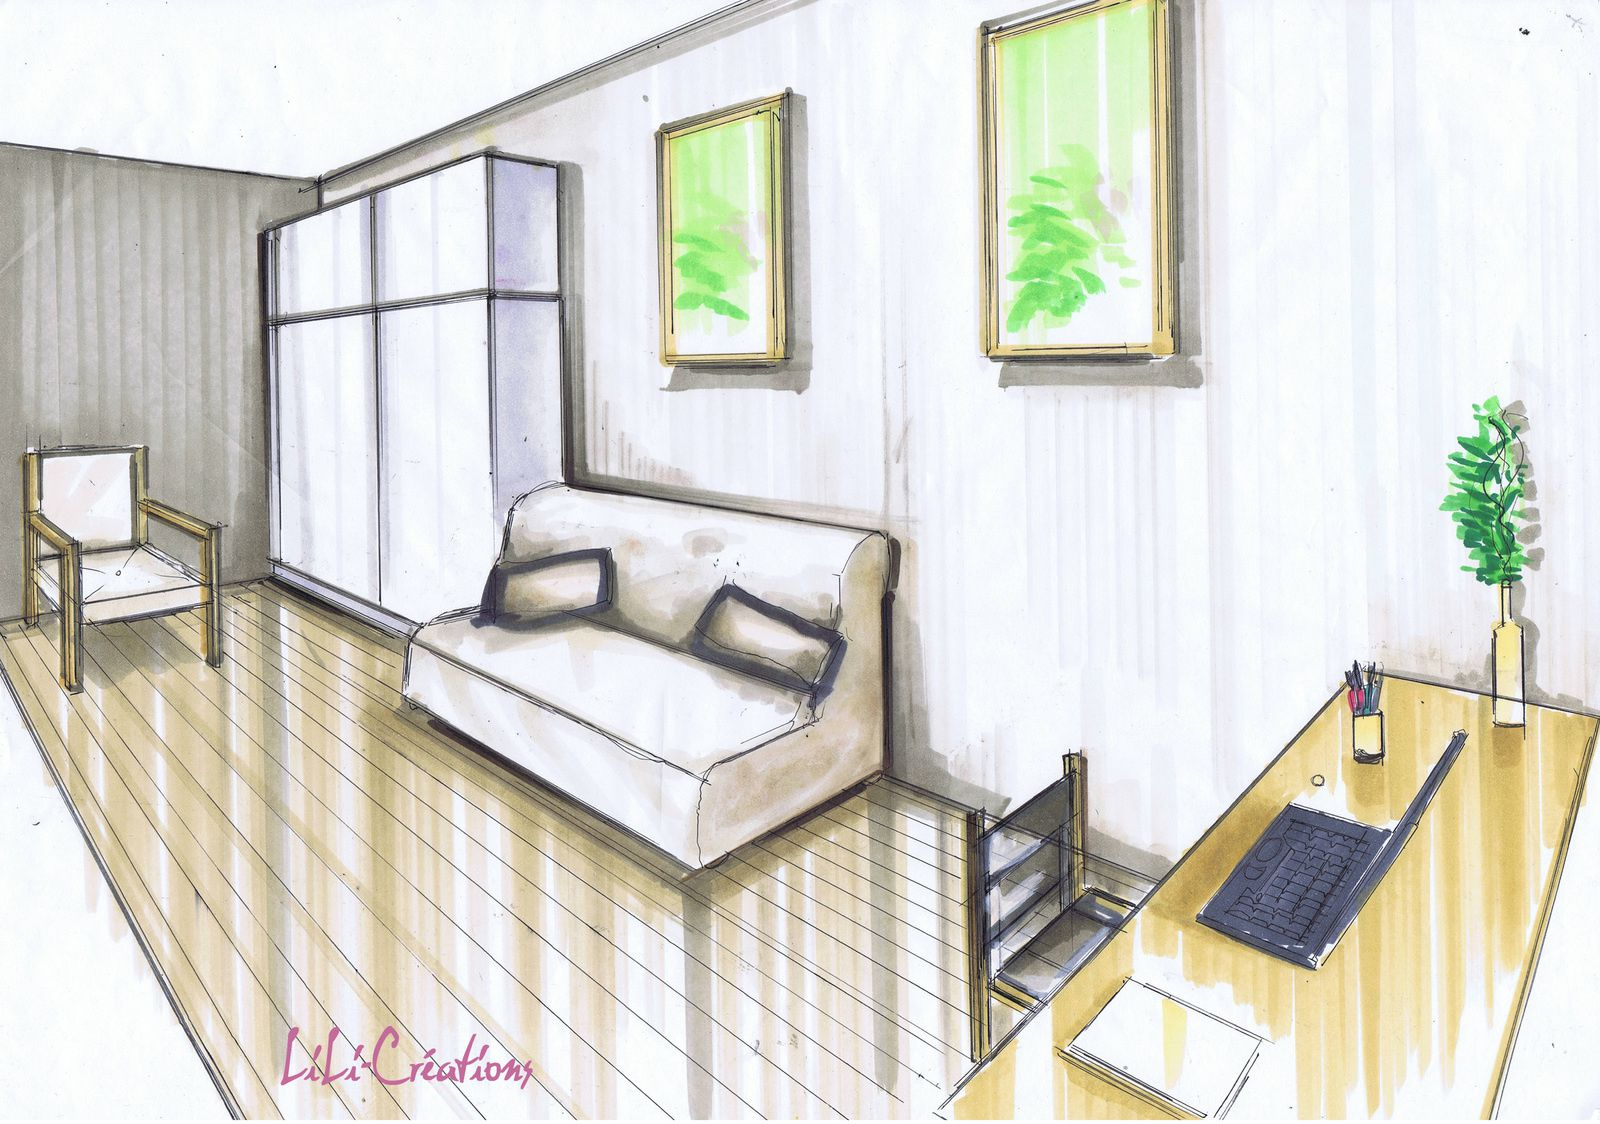 dessin en perspective d une chambre with dessin en perspective d une chambre. Black Bedroom Furniture Sets. Home Design Ideas